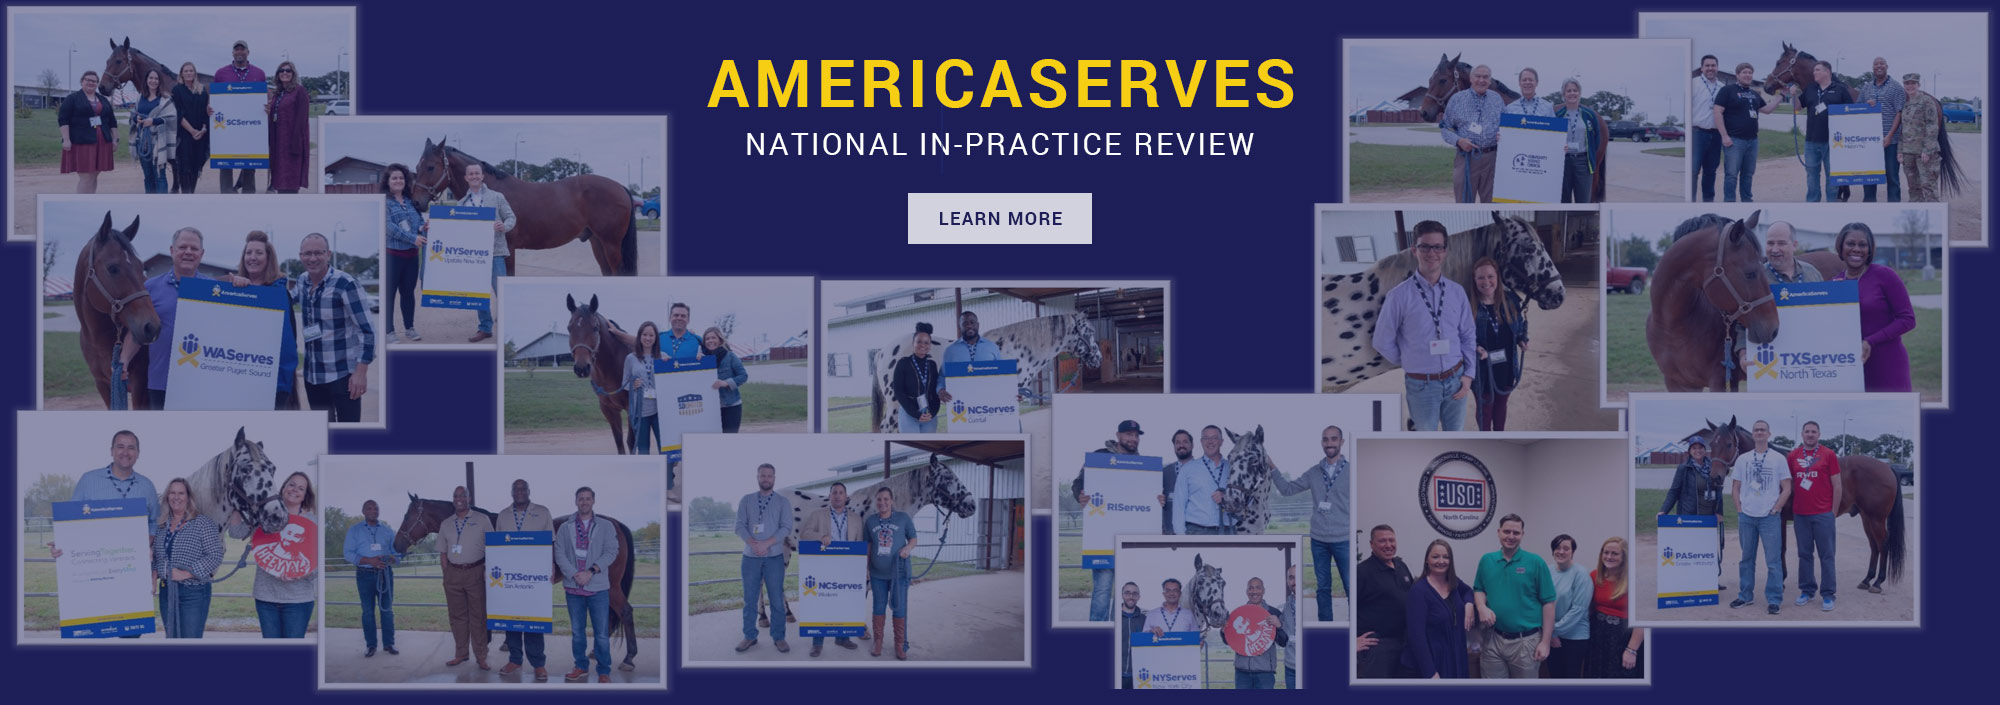 Learn More about the AmericaServes National In-Practice Review